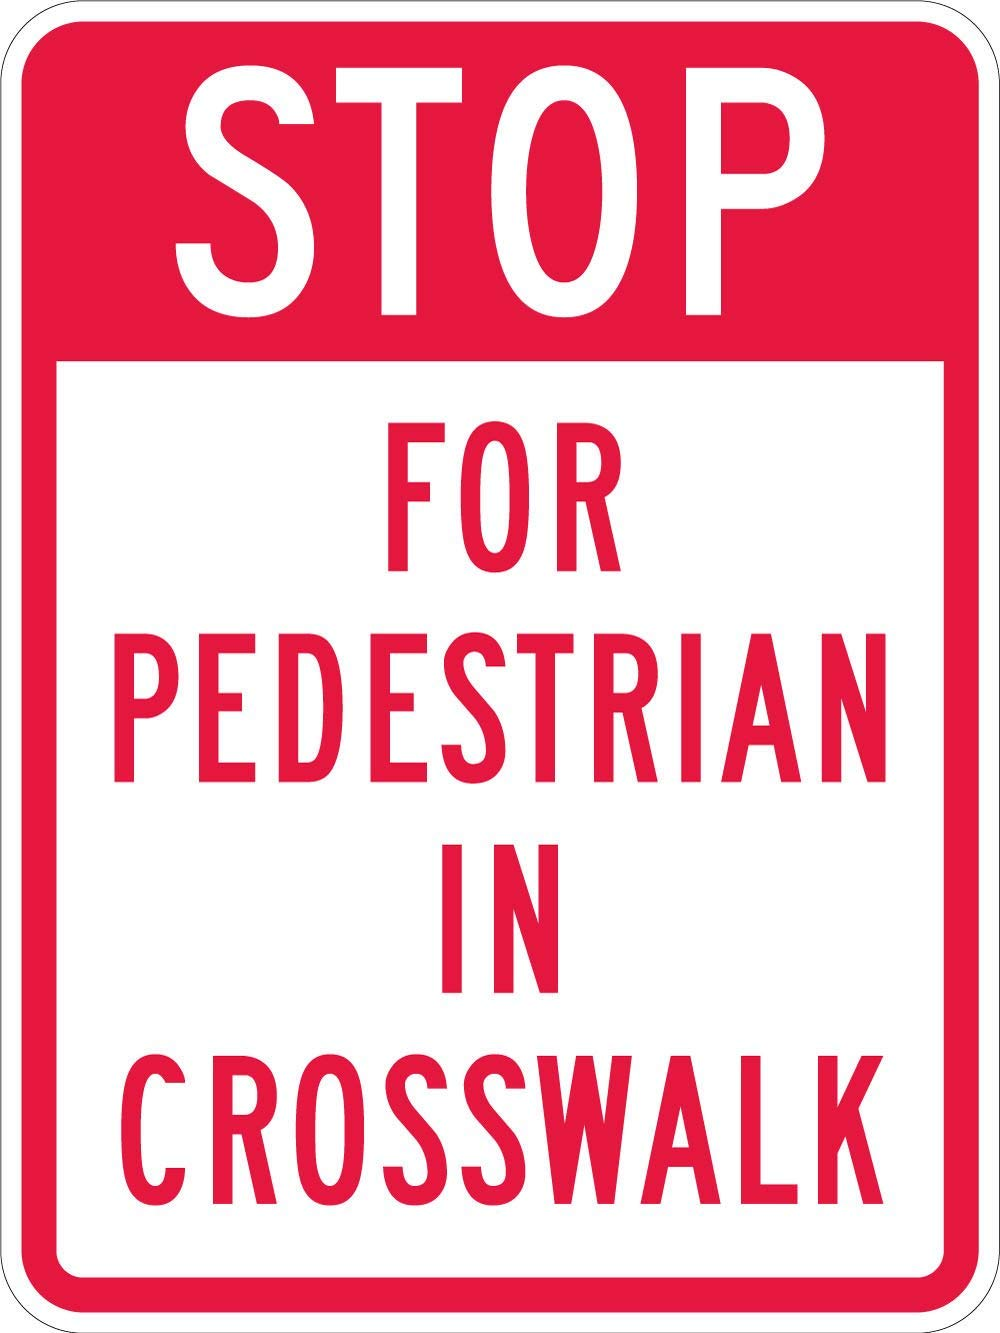 "SmartSign 3M High Intensity Grade Reflective Sign, Legend""Stop - for Pedestrian in Crosswalk"", 24"" high x 18"" wide, Red on White"